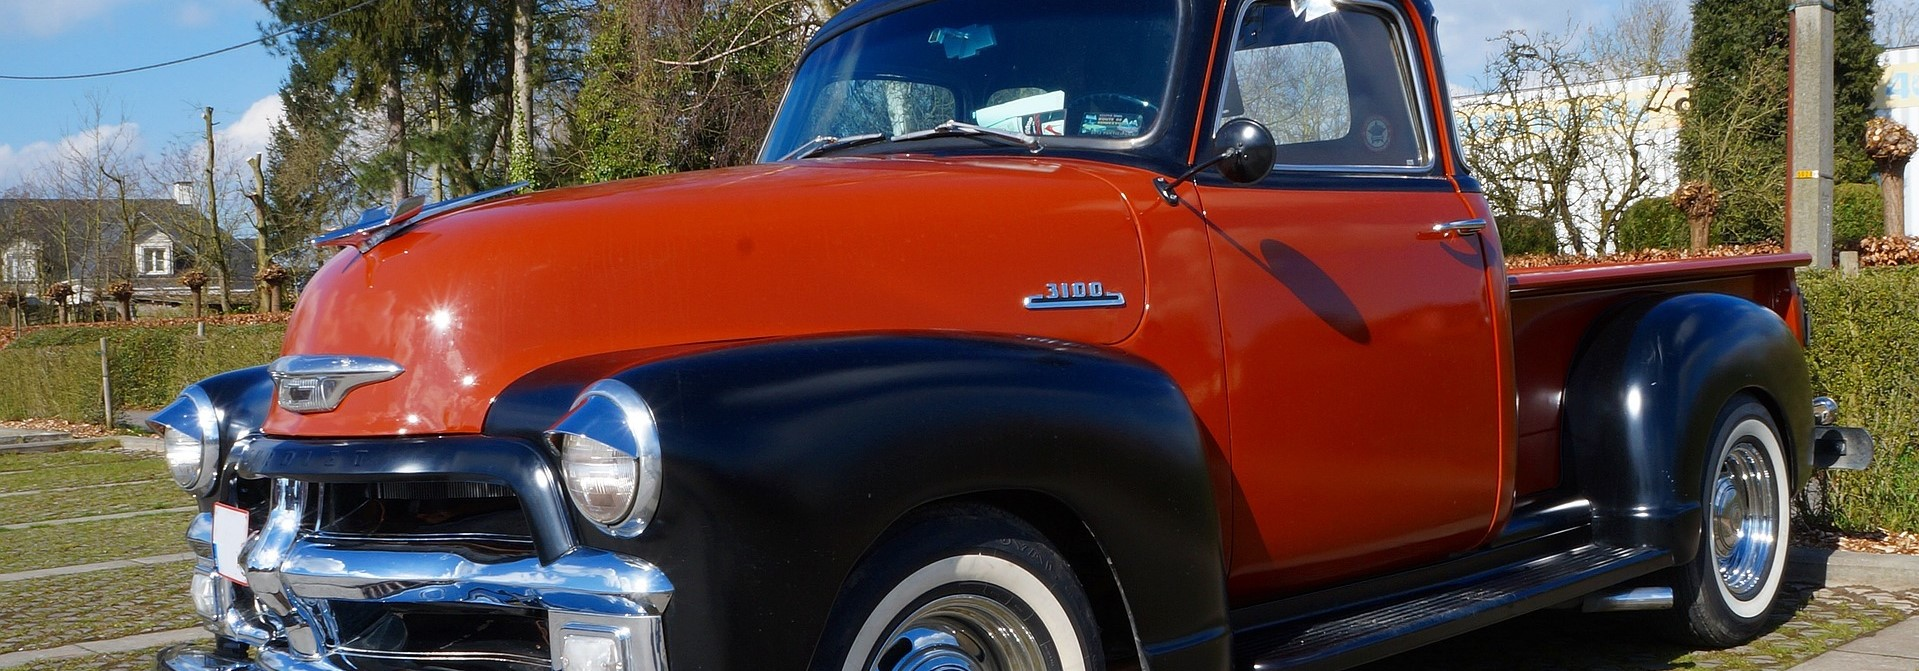 Retro Chevy in Pittsburgh, Pennsylvania | Breast Cancer Car Donations